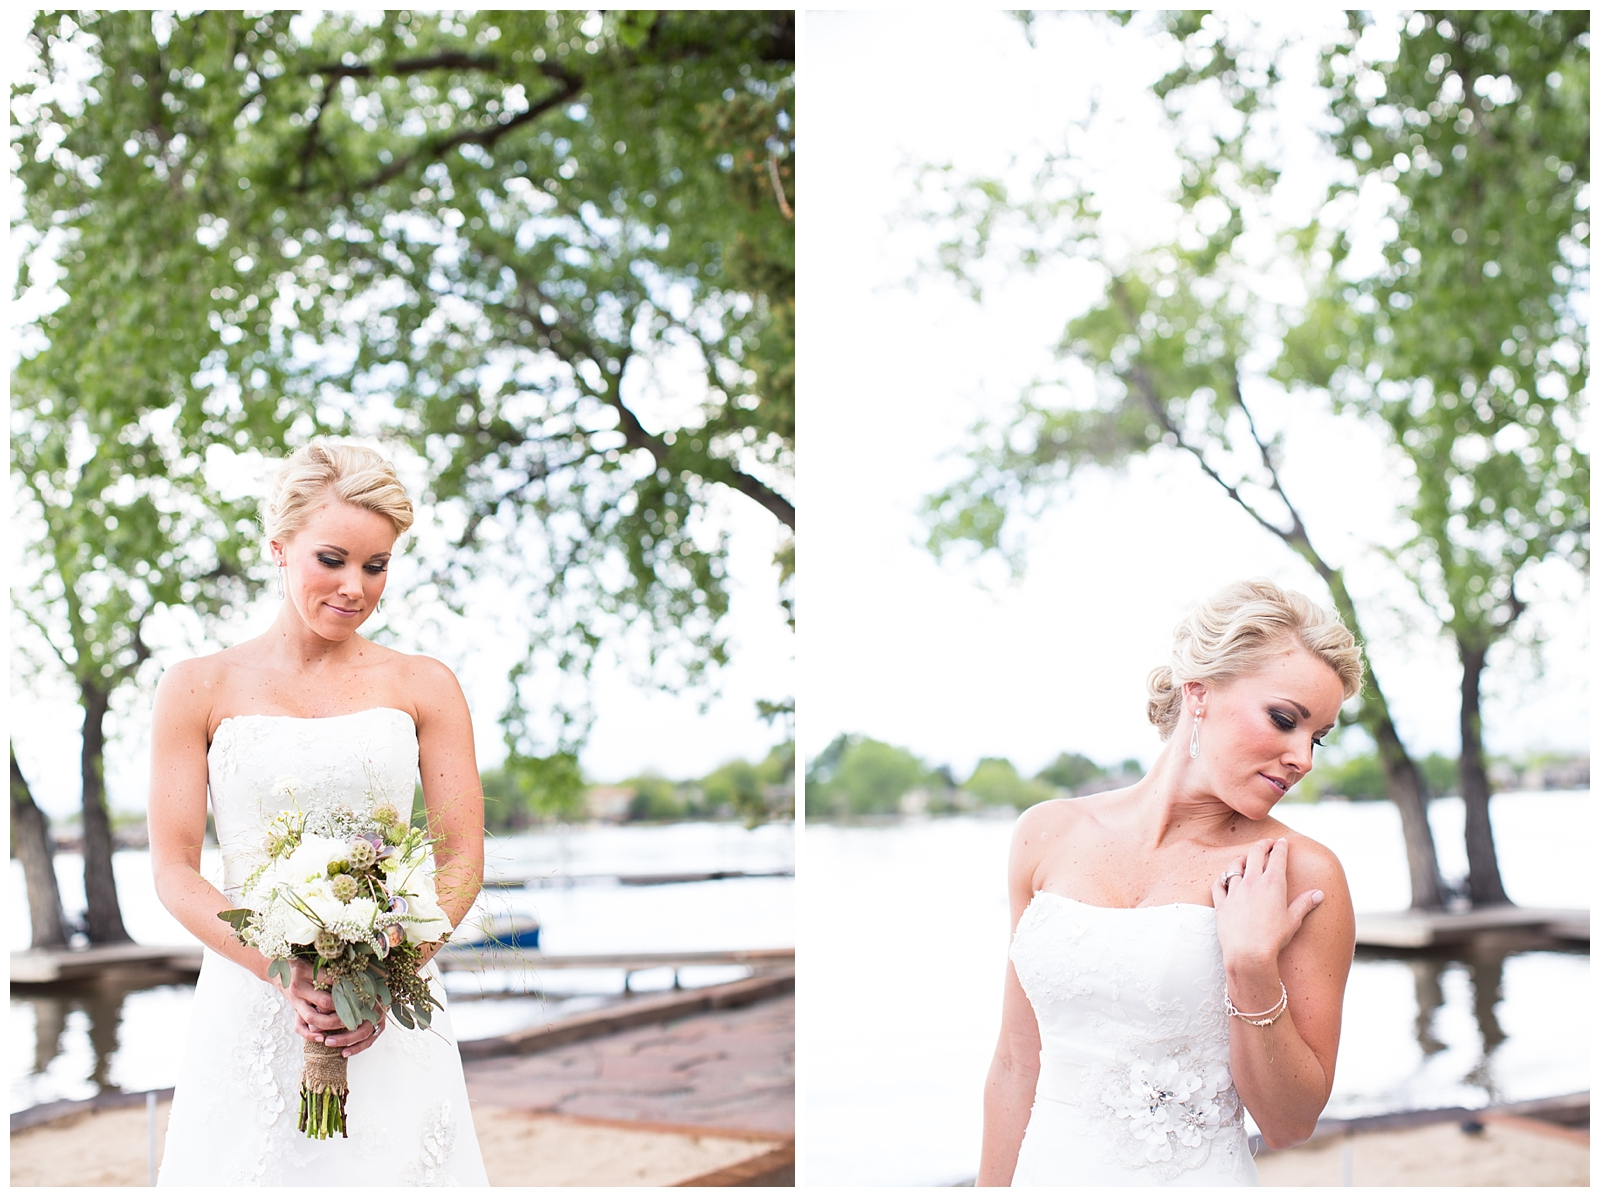 houstonweddingphotography_0201.jpg